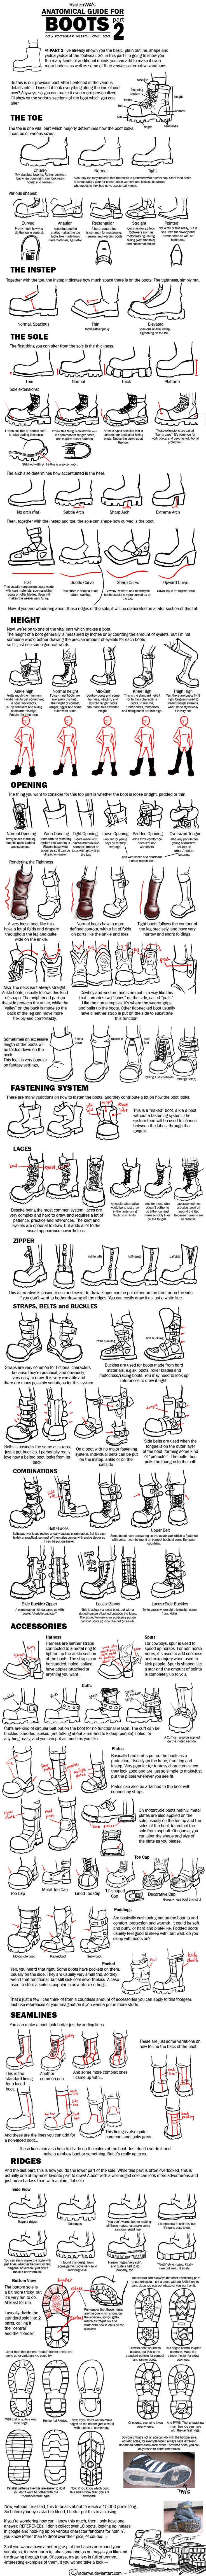 WA's BOOT Anatomy Tutorial Pt2 by *RadenWA on deviantART #Anatomytutorial